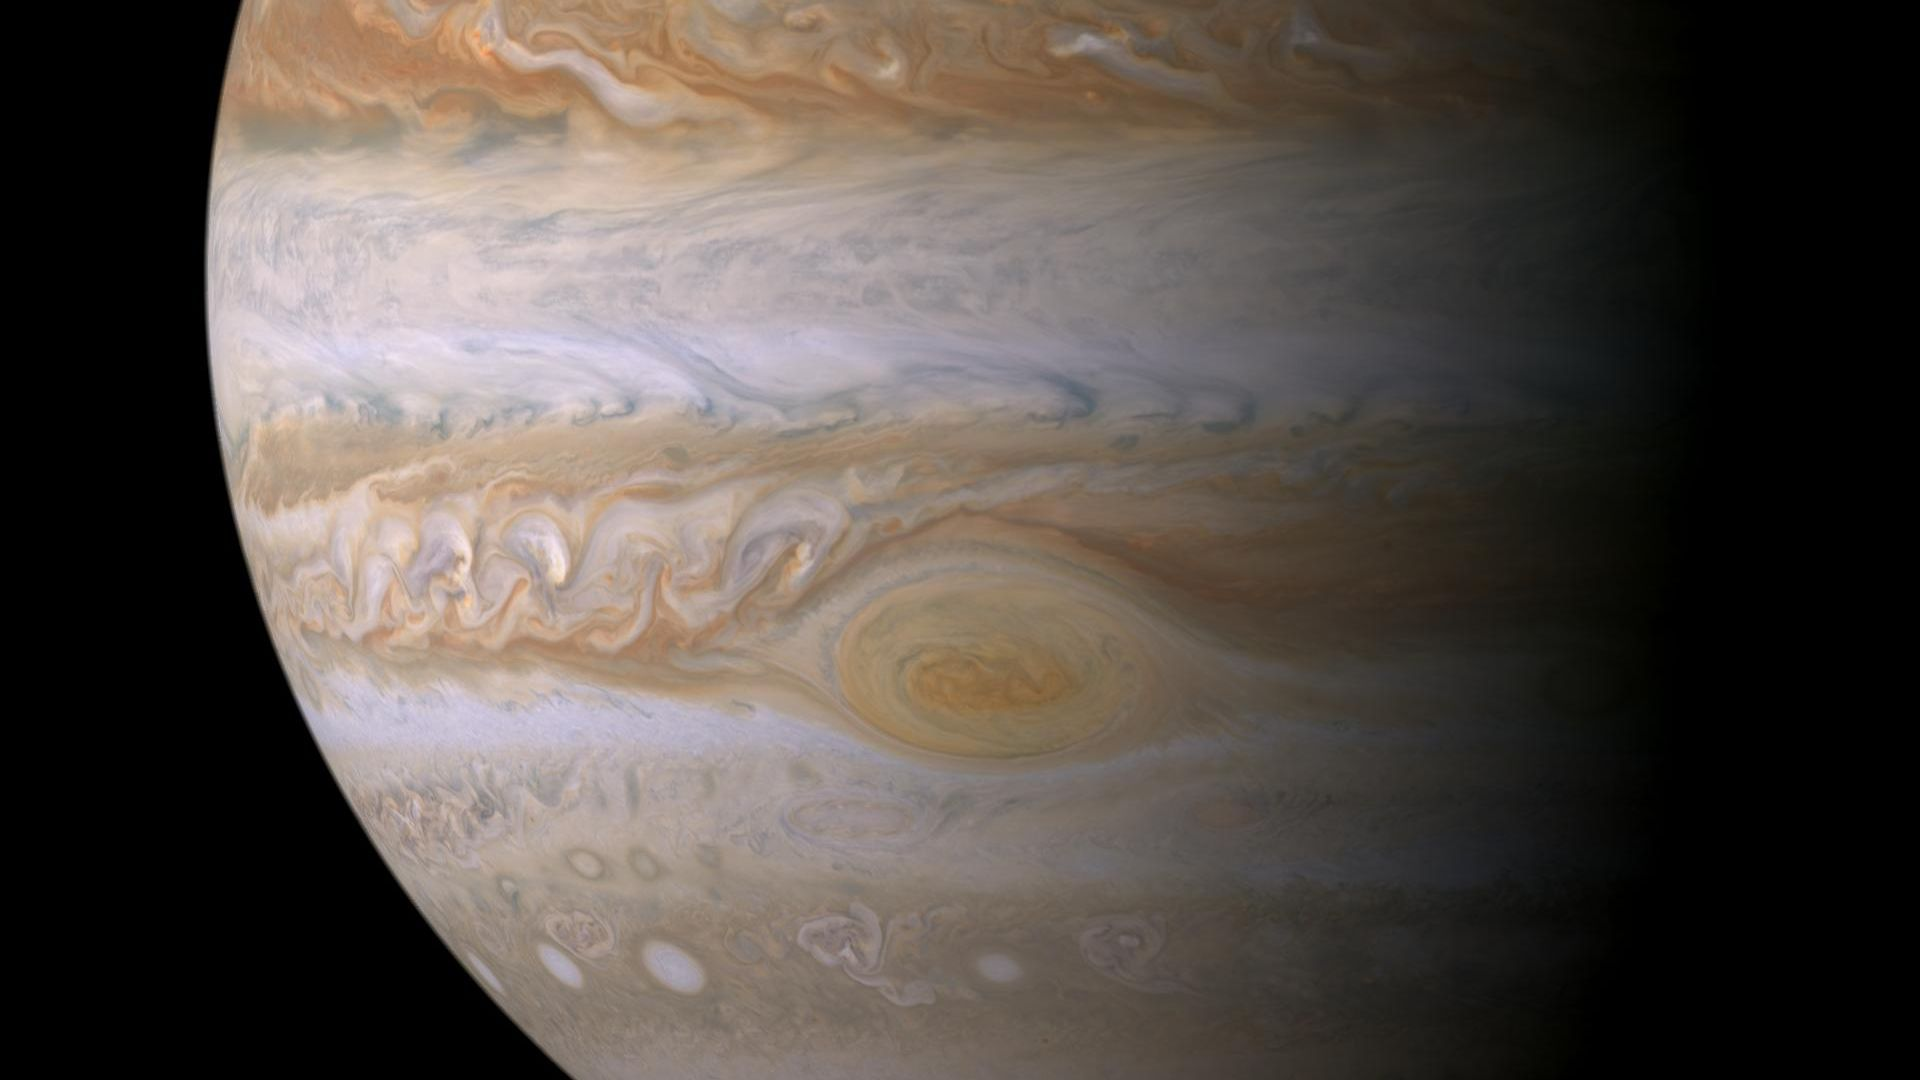 Jupiter as seen by the Cassini spacecraft.